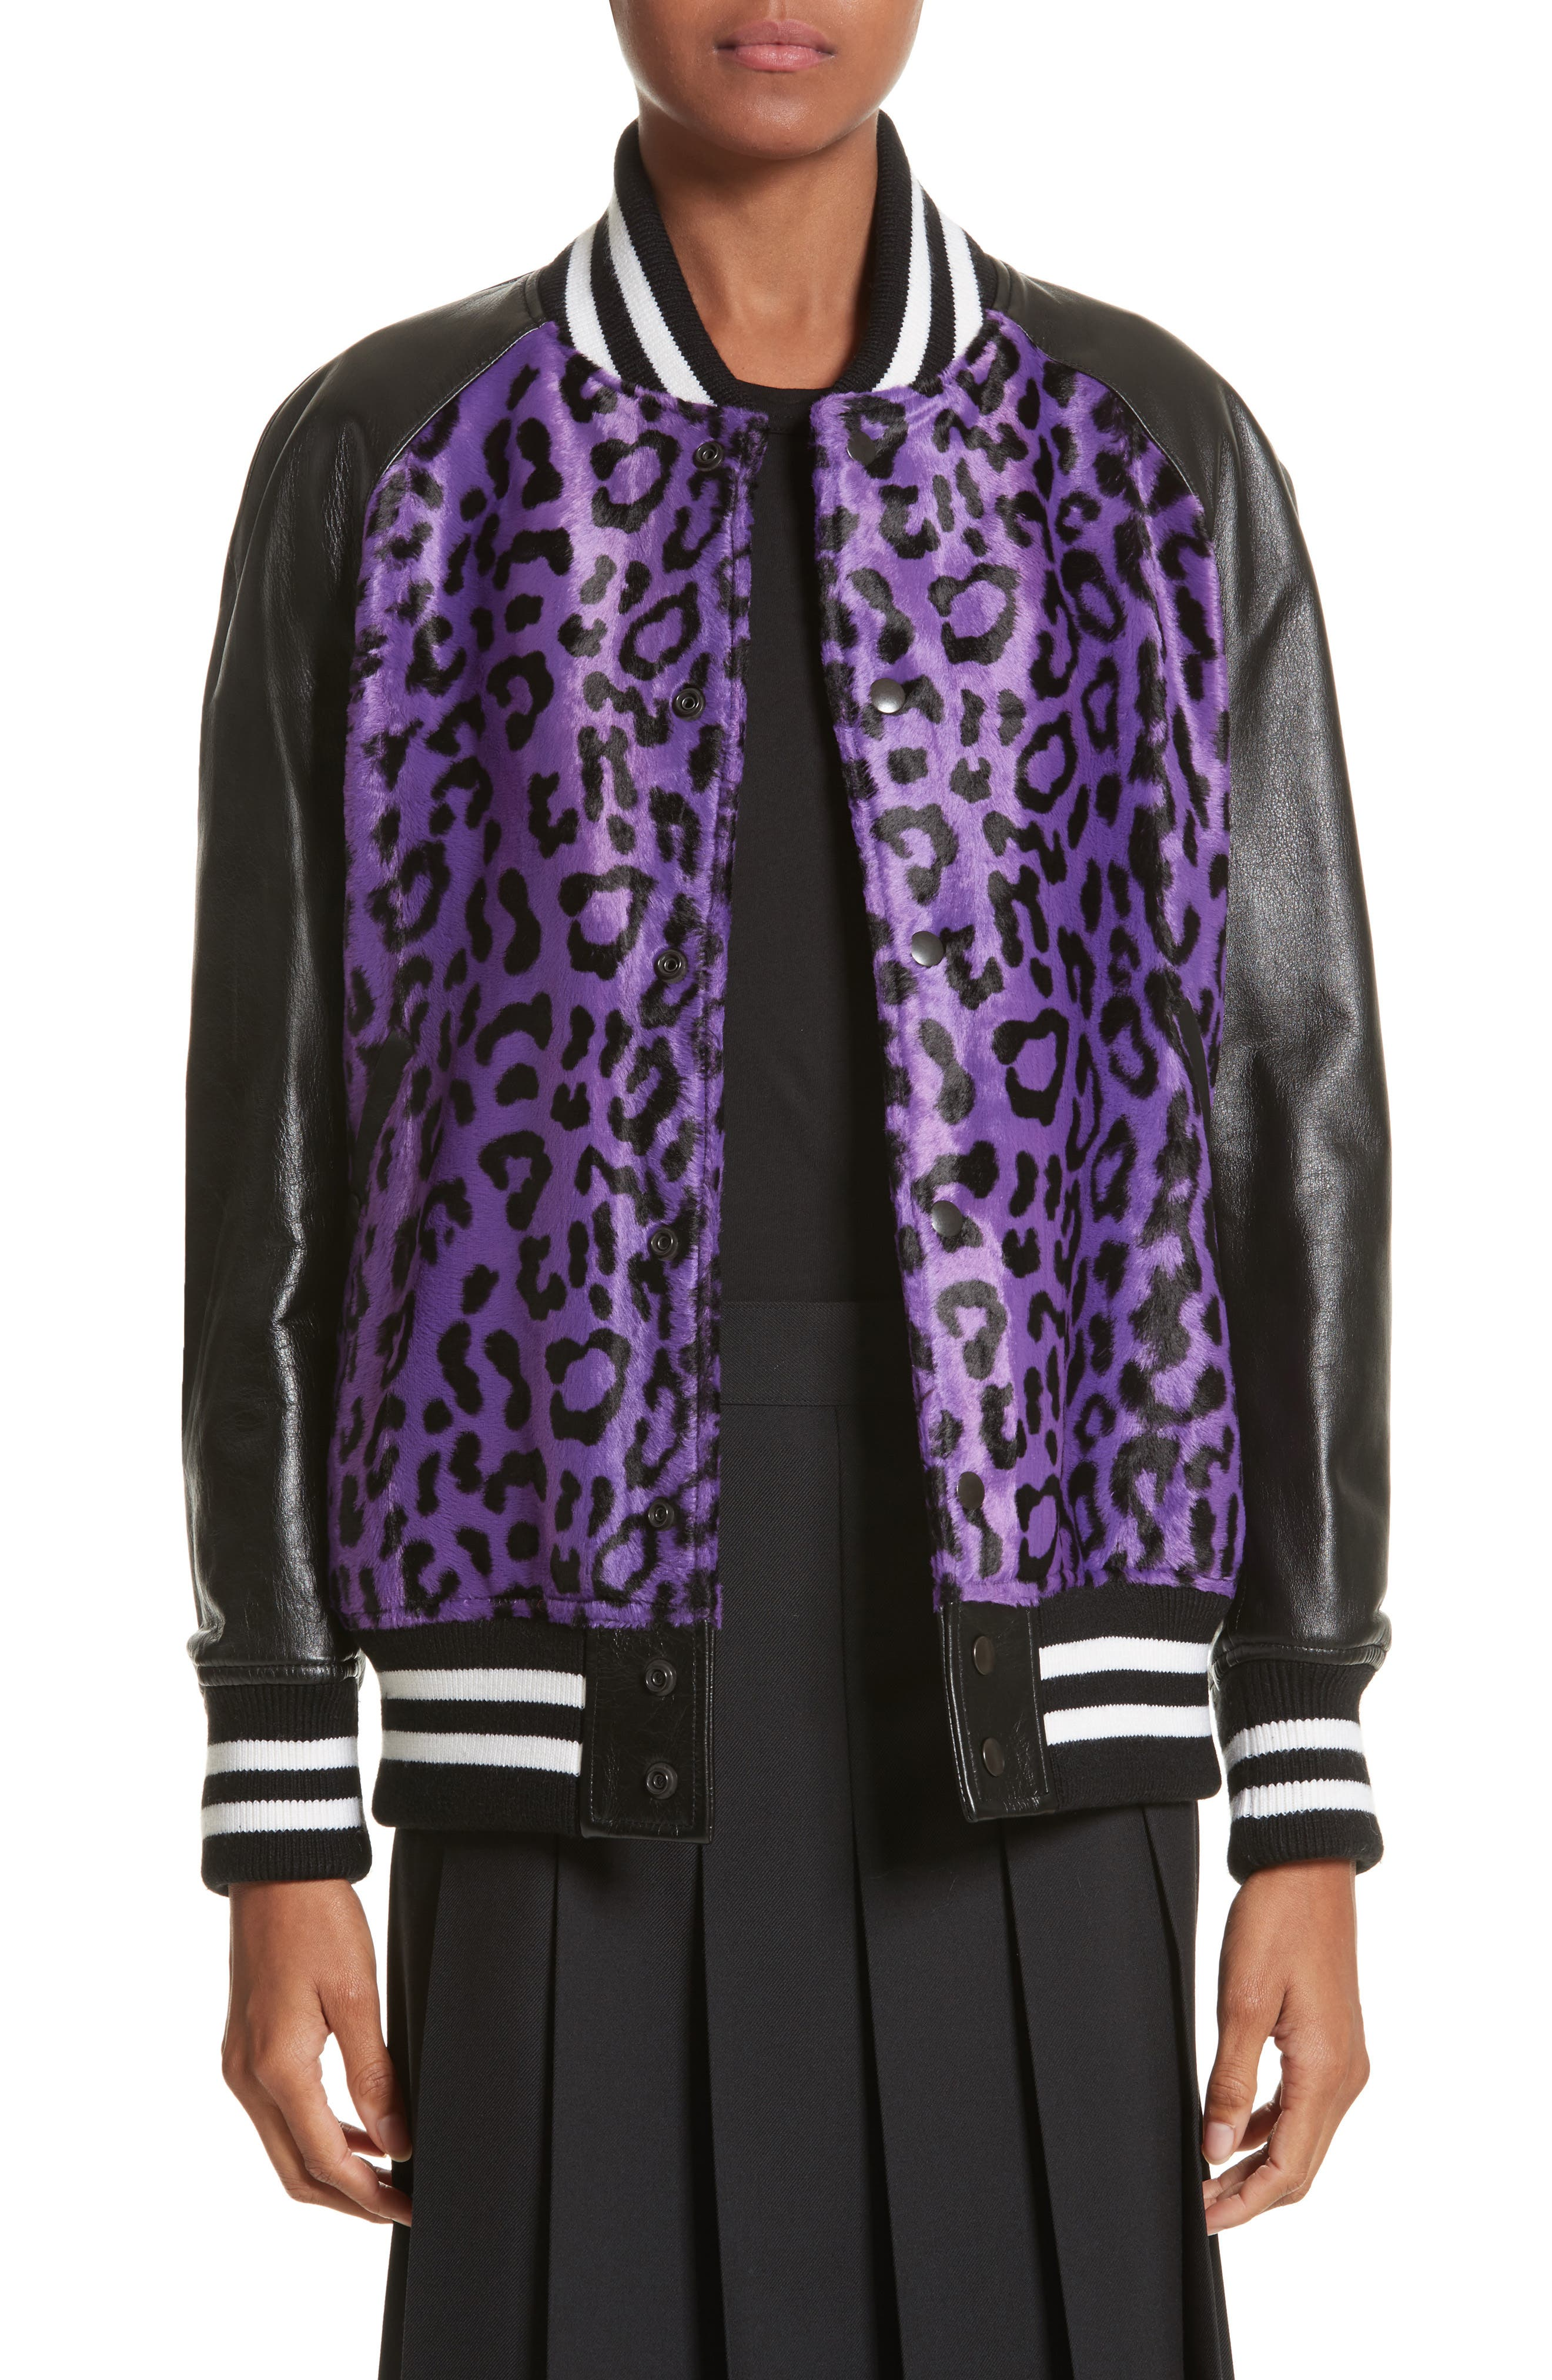 Junya Watanabe Cheetah Print Faux Fur & Leather Track Jacket